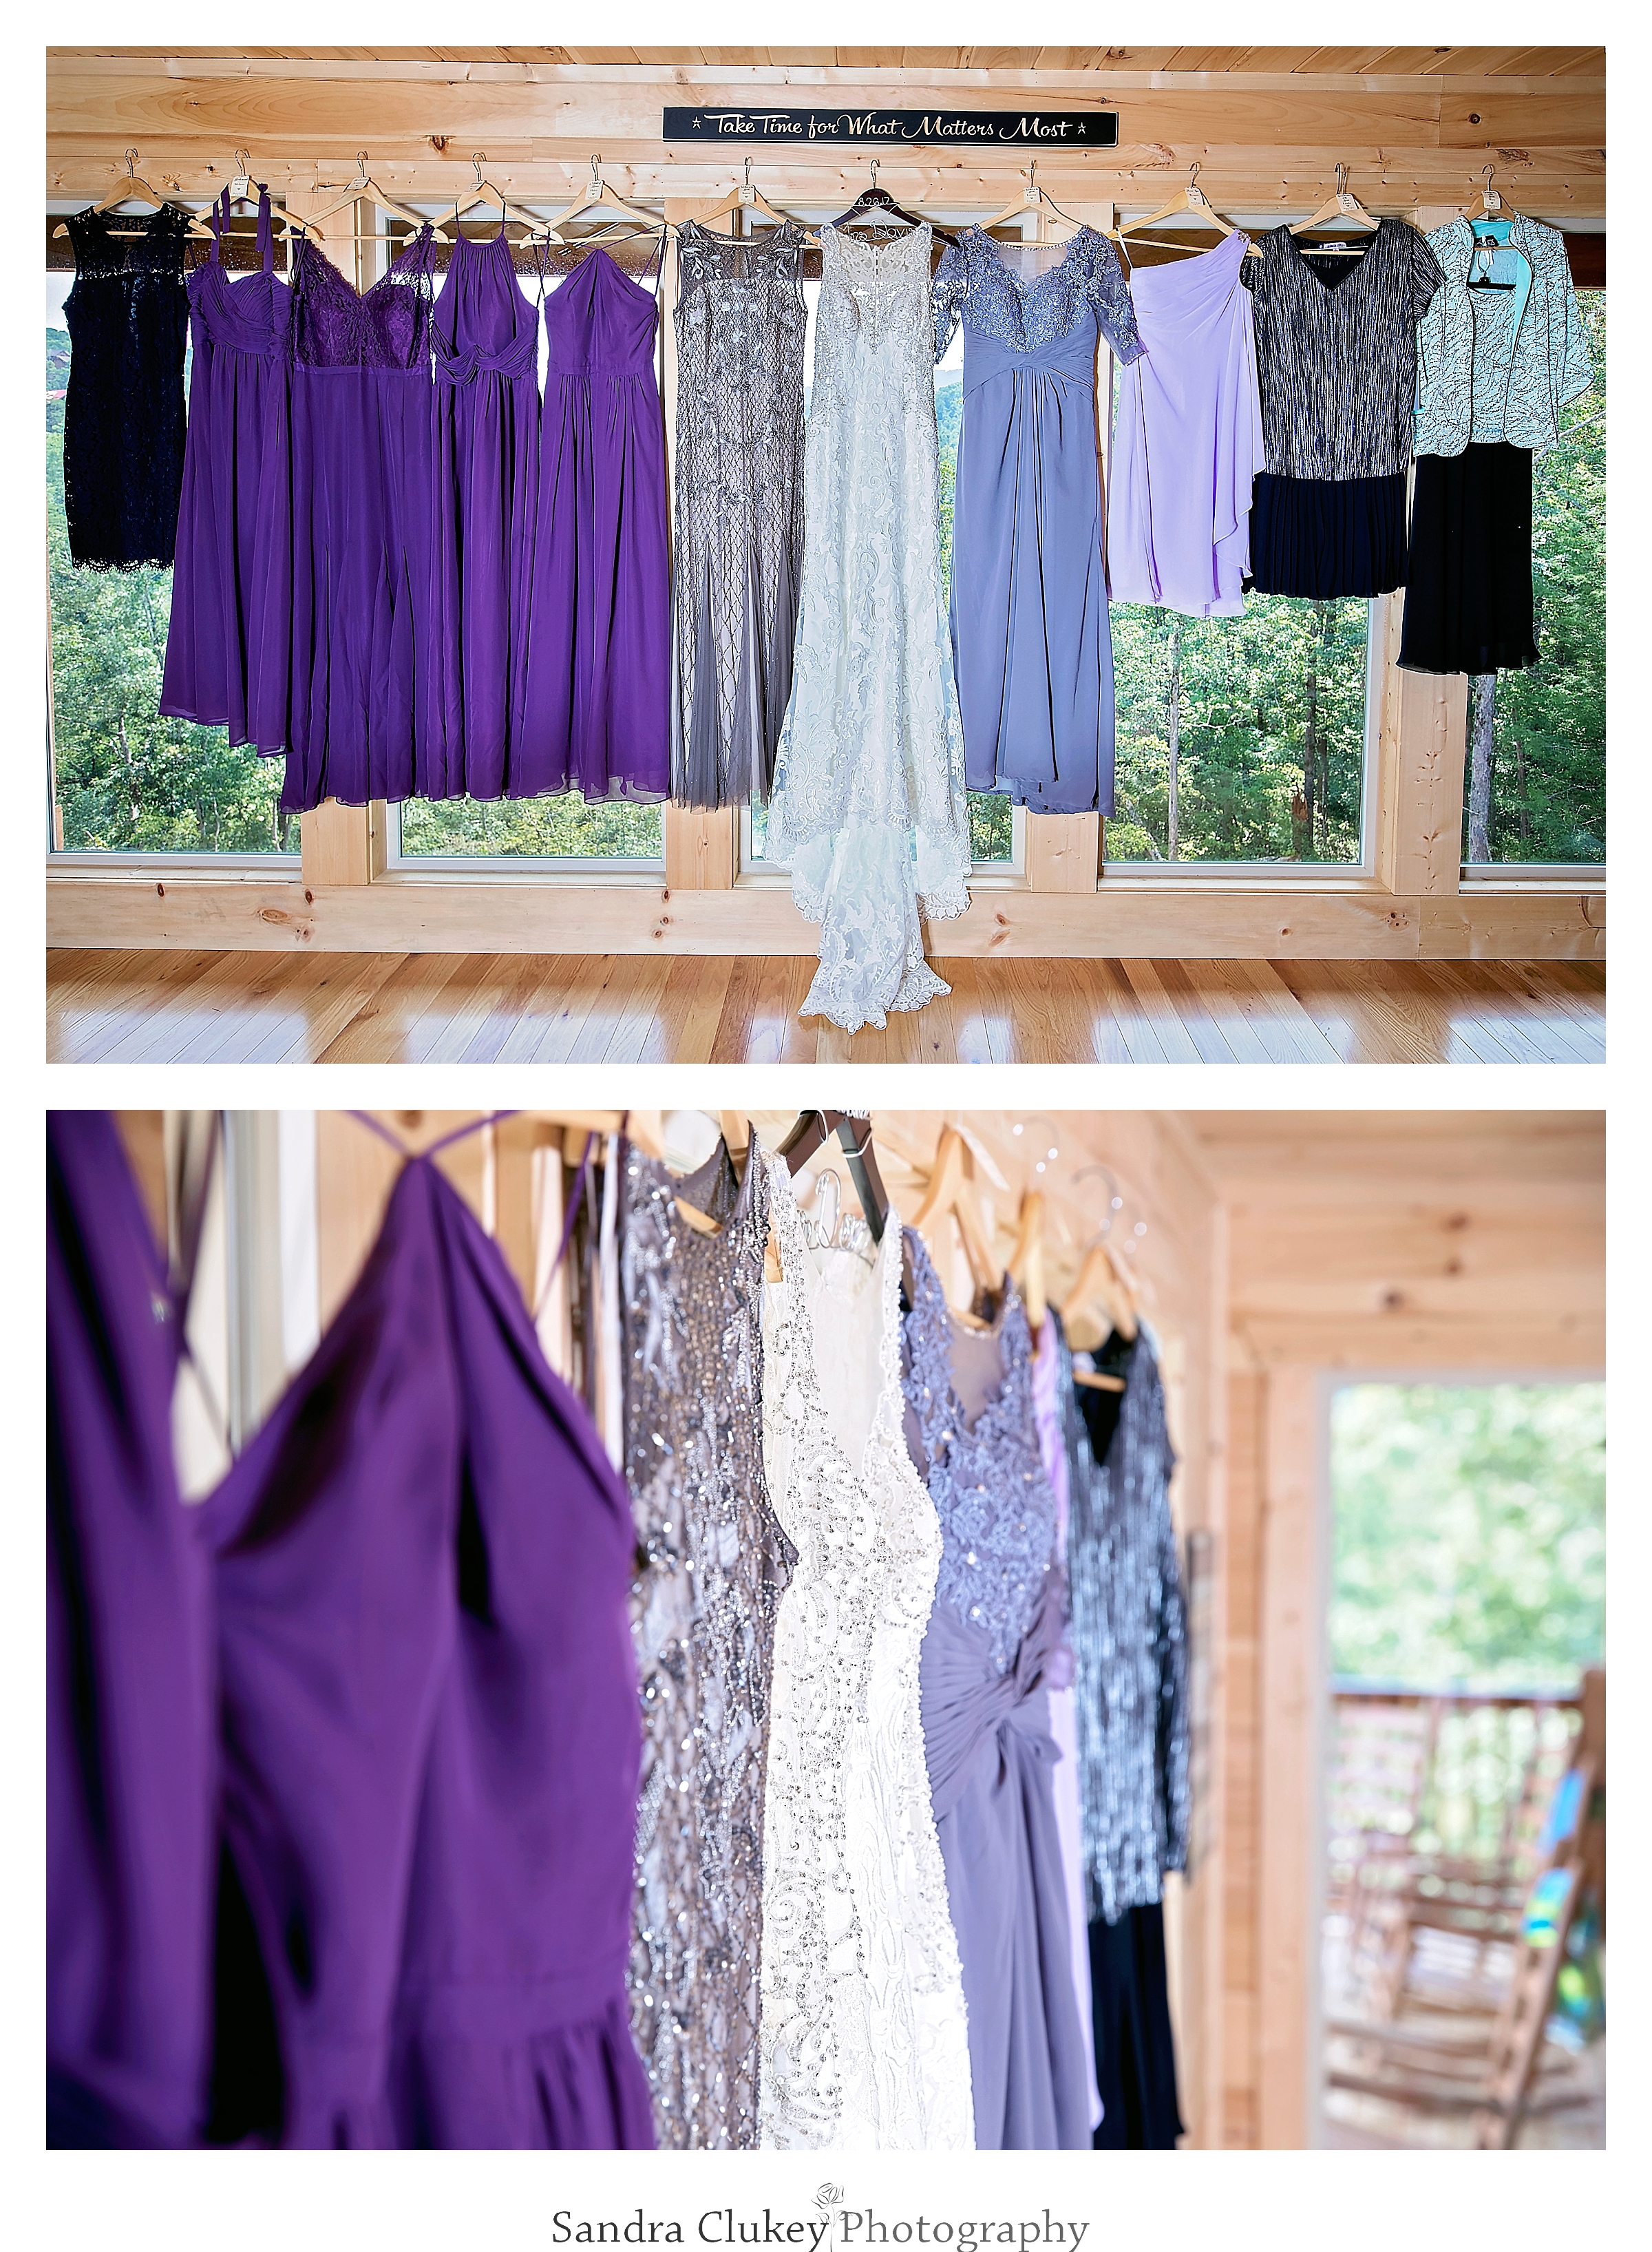 Multitude of dresses